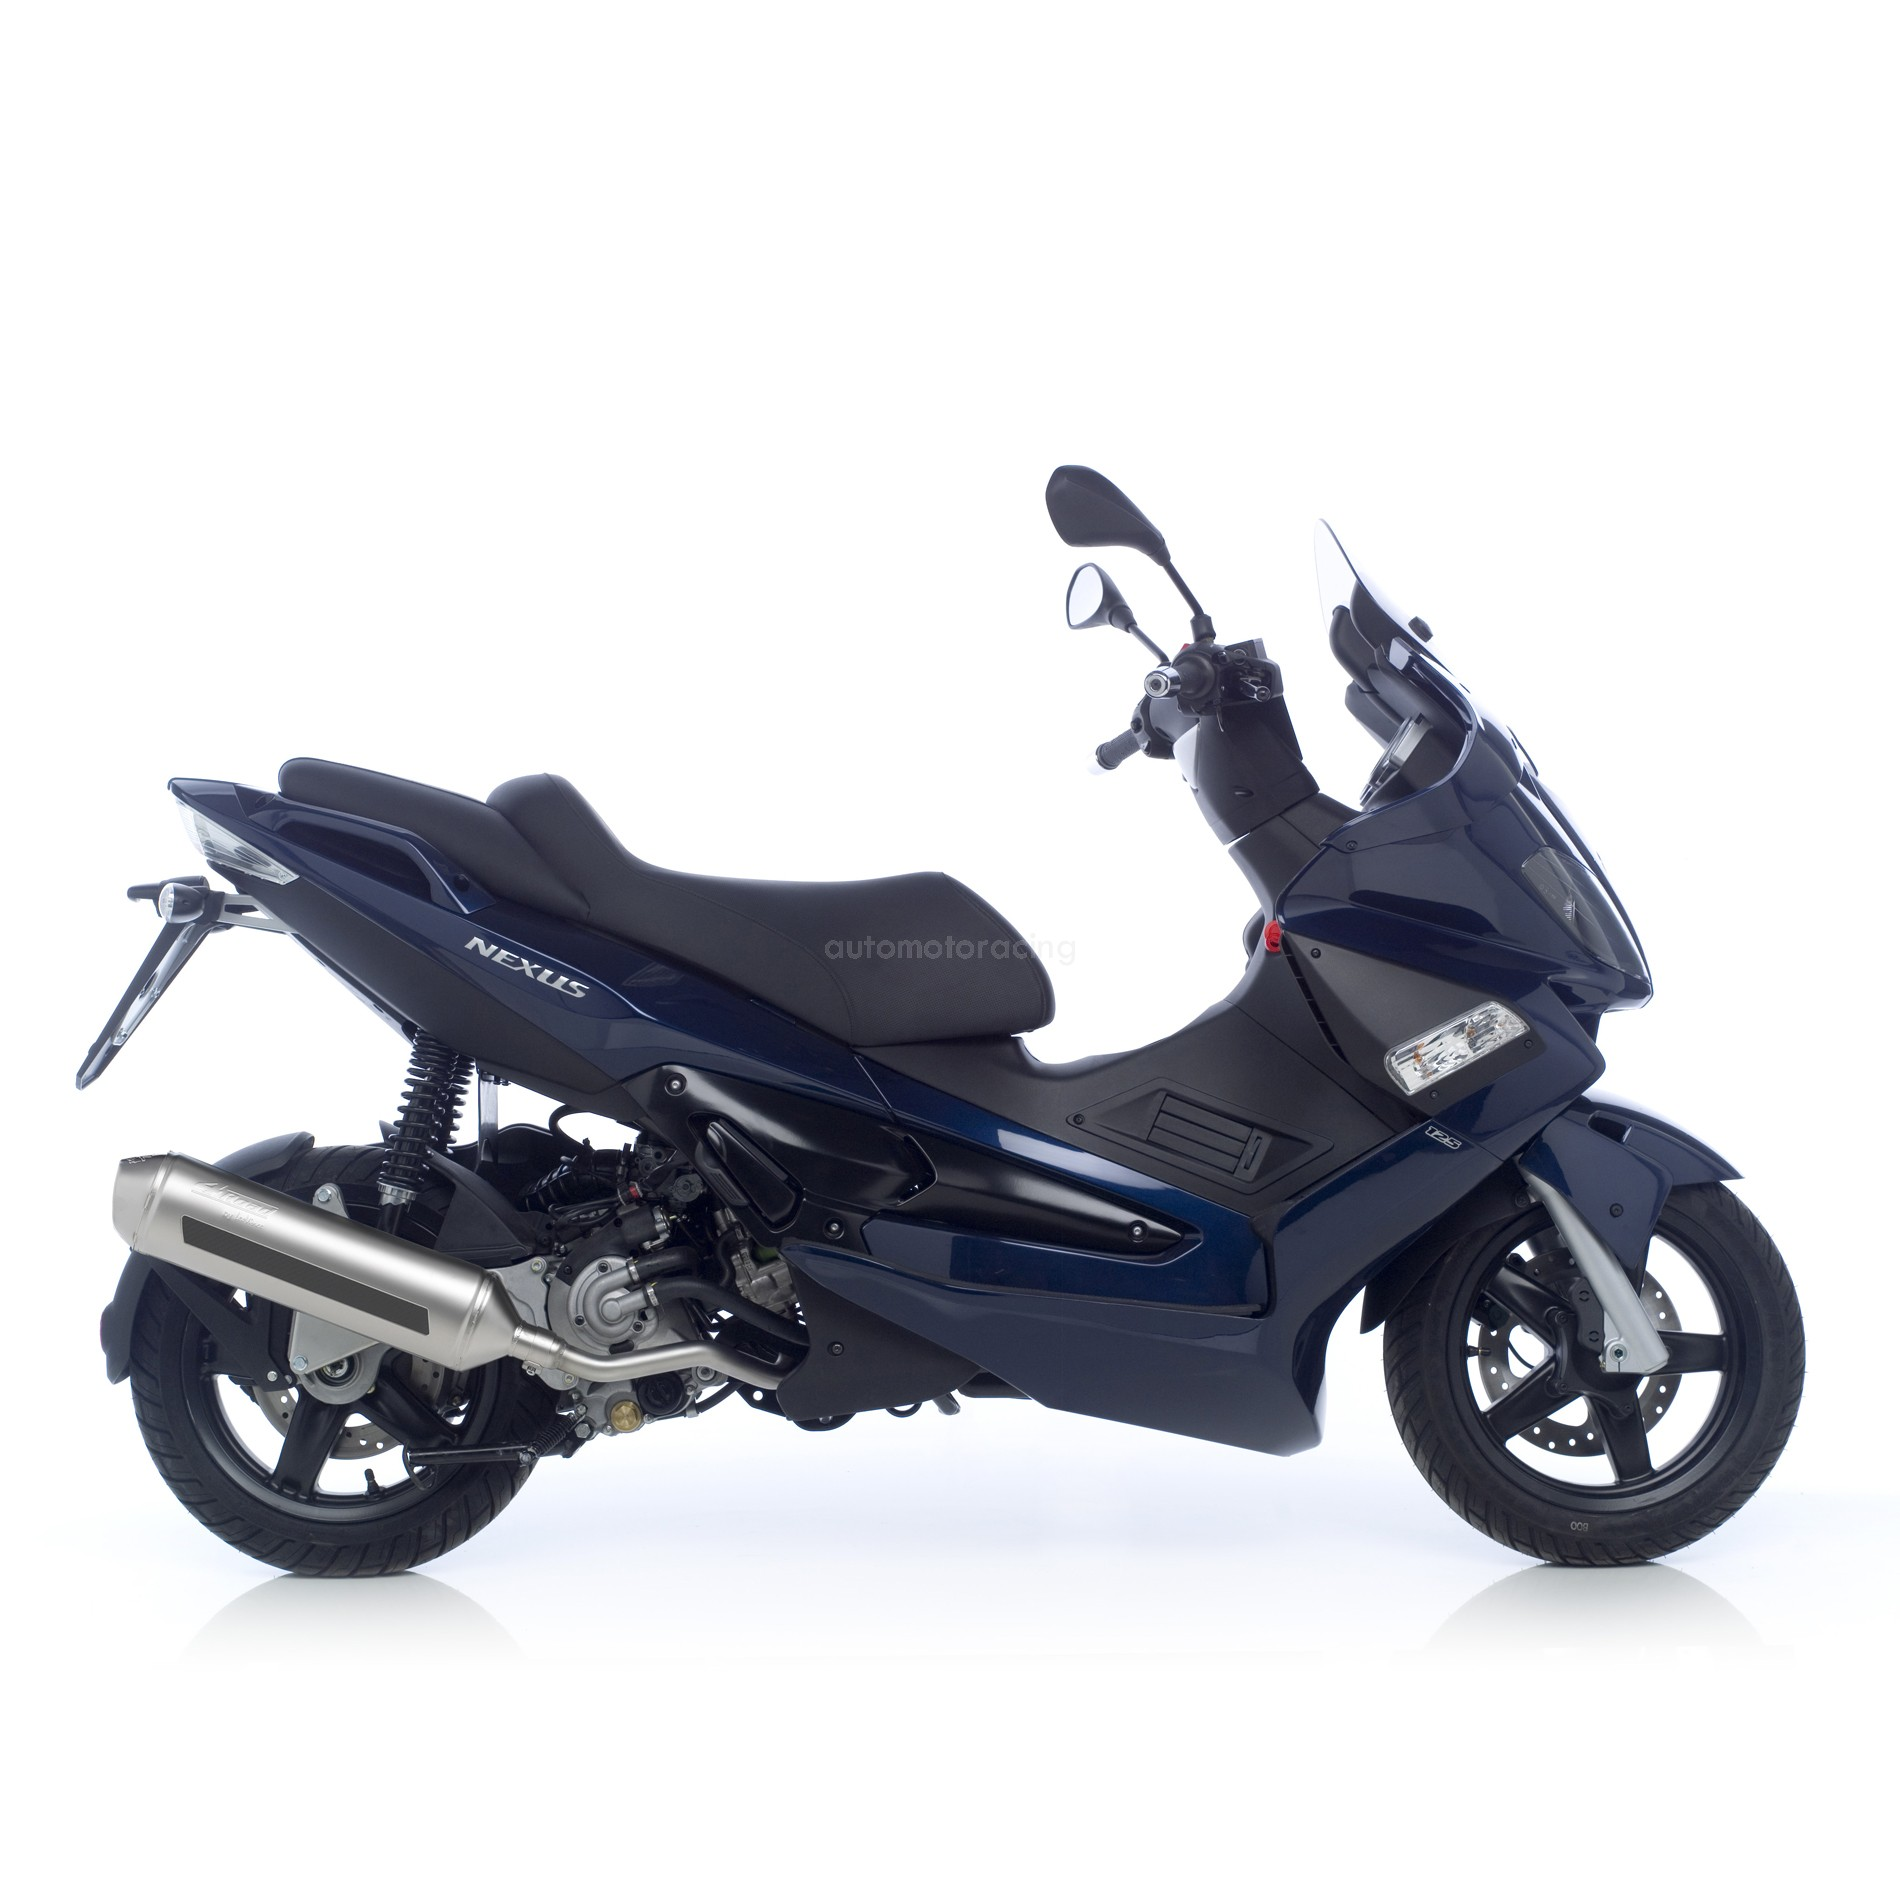 2008 gilera nexus 125 pics specs and information. Black Bedroom Furniture Sets. Home Design Ideas